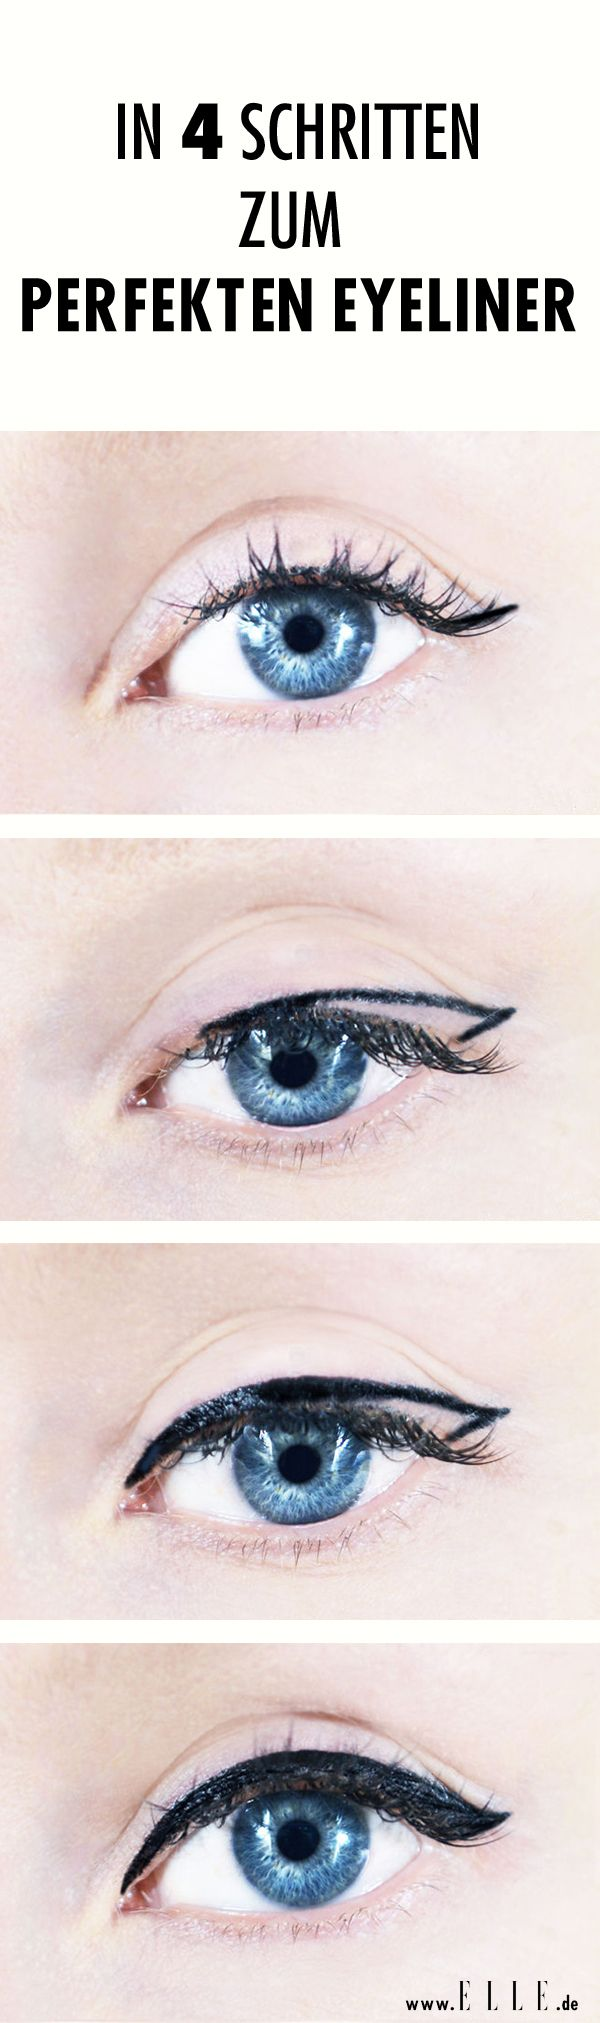 Make-up-Tutorial: der perfekte Eyeliner